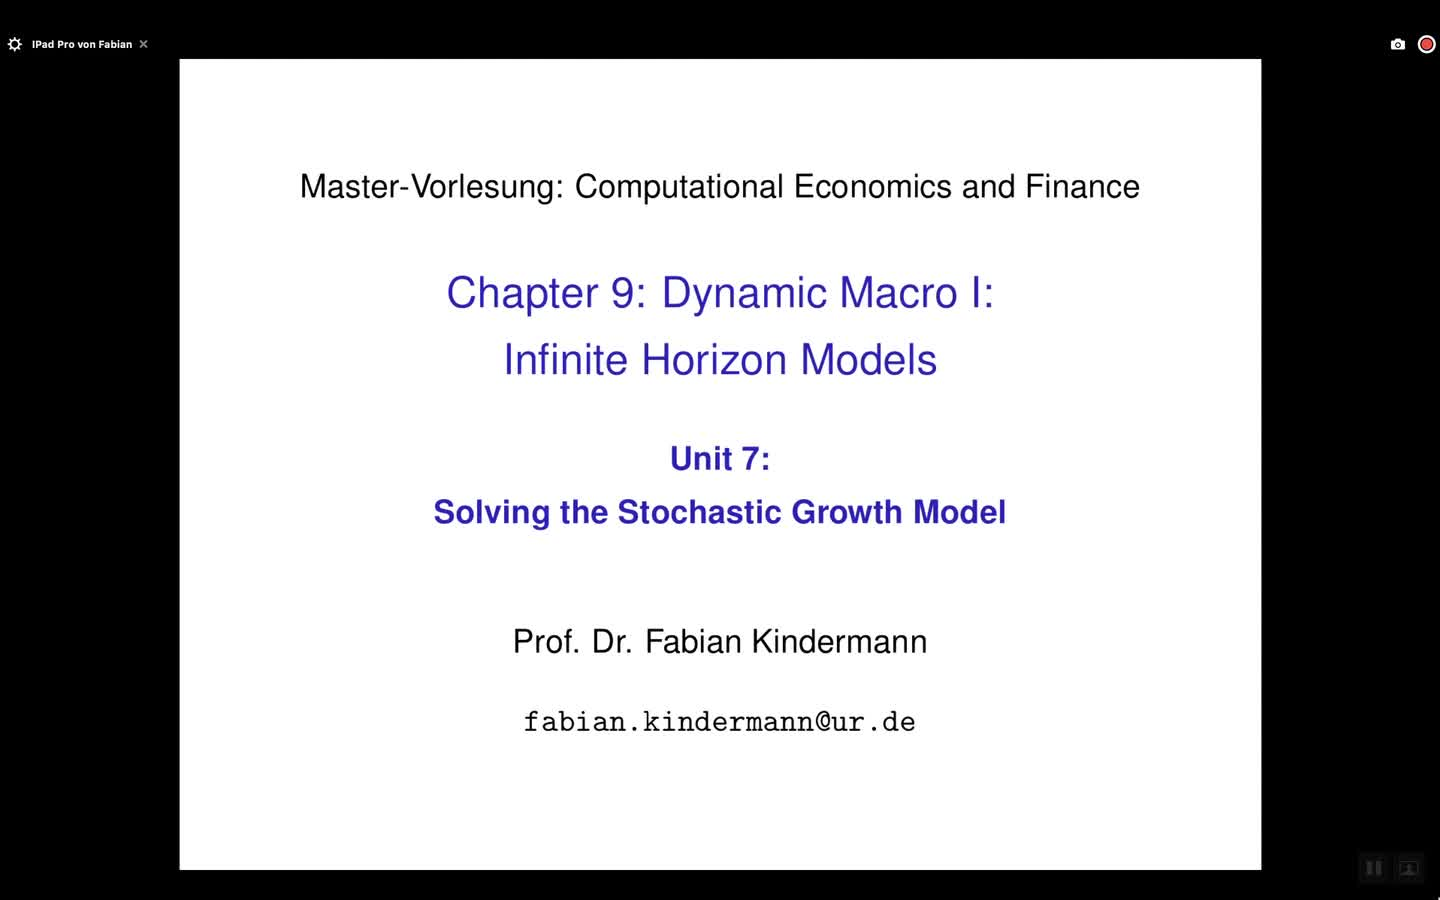 Chapter 9 - Unit 7 - Solving the Stochastic Growth Model